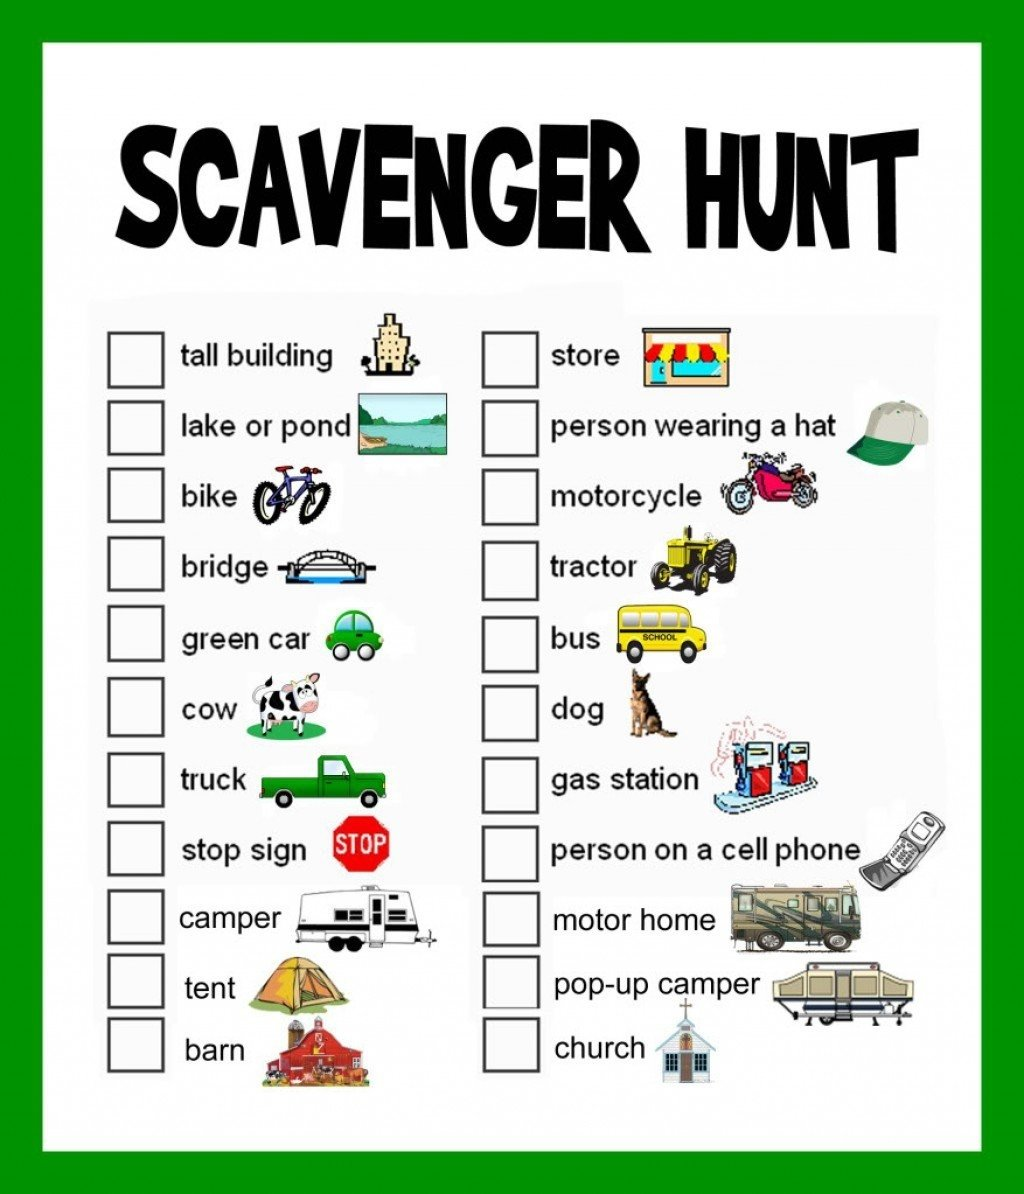 10 Awesome Photo Scavenger Hunt List Ideas 5 super fun scavenger hunt ideas road trips vacation and road trippin 1 2021